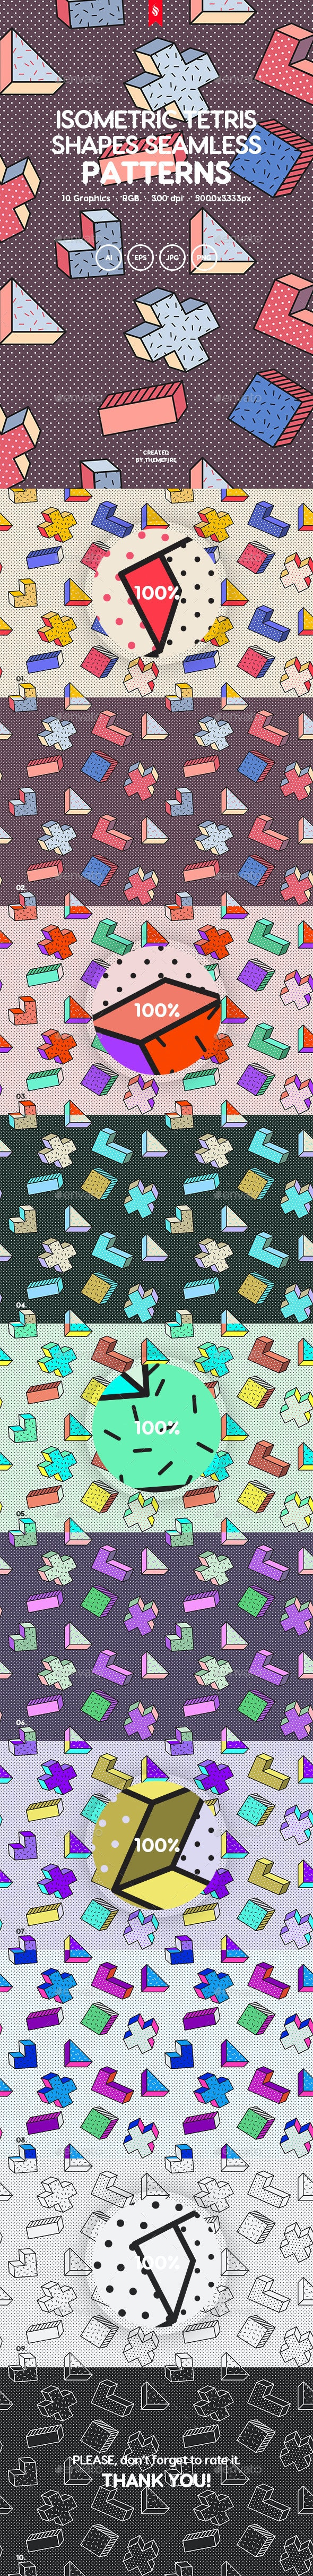 Isometric Tetris Shapes Seamless Patterns - Patterns Backgrounds